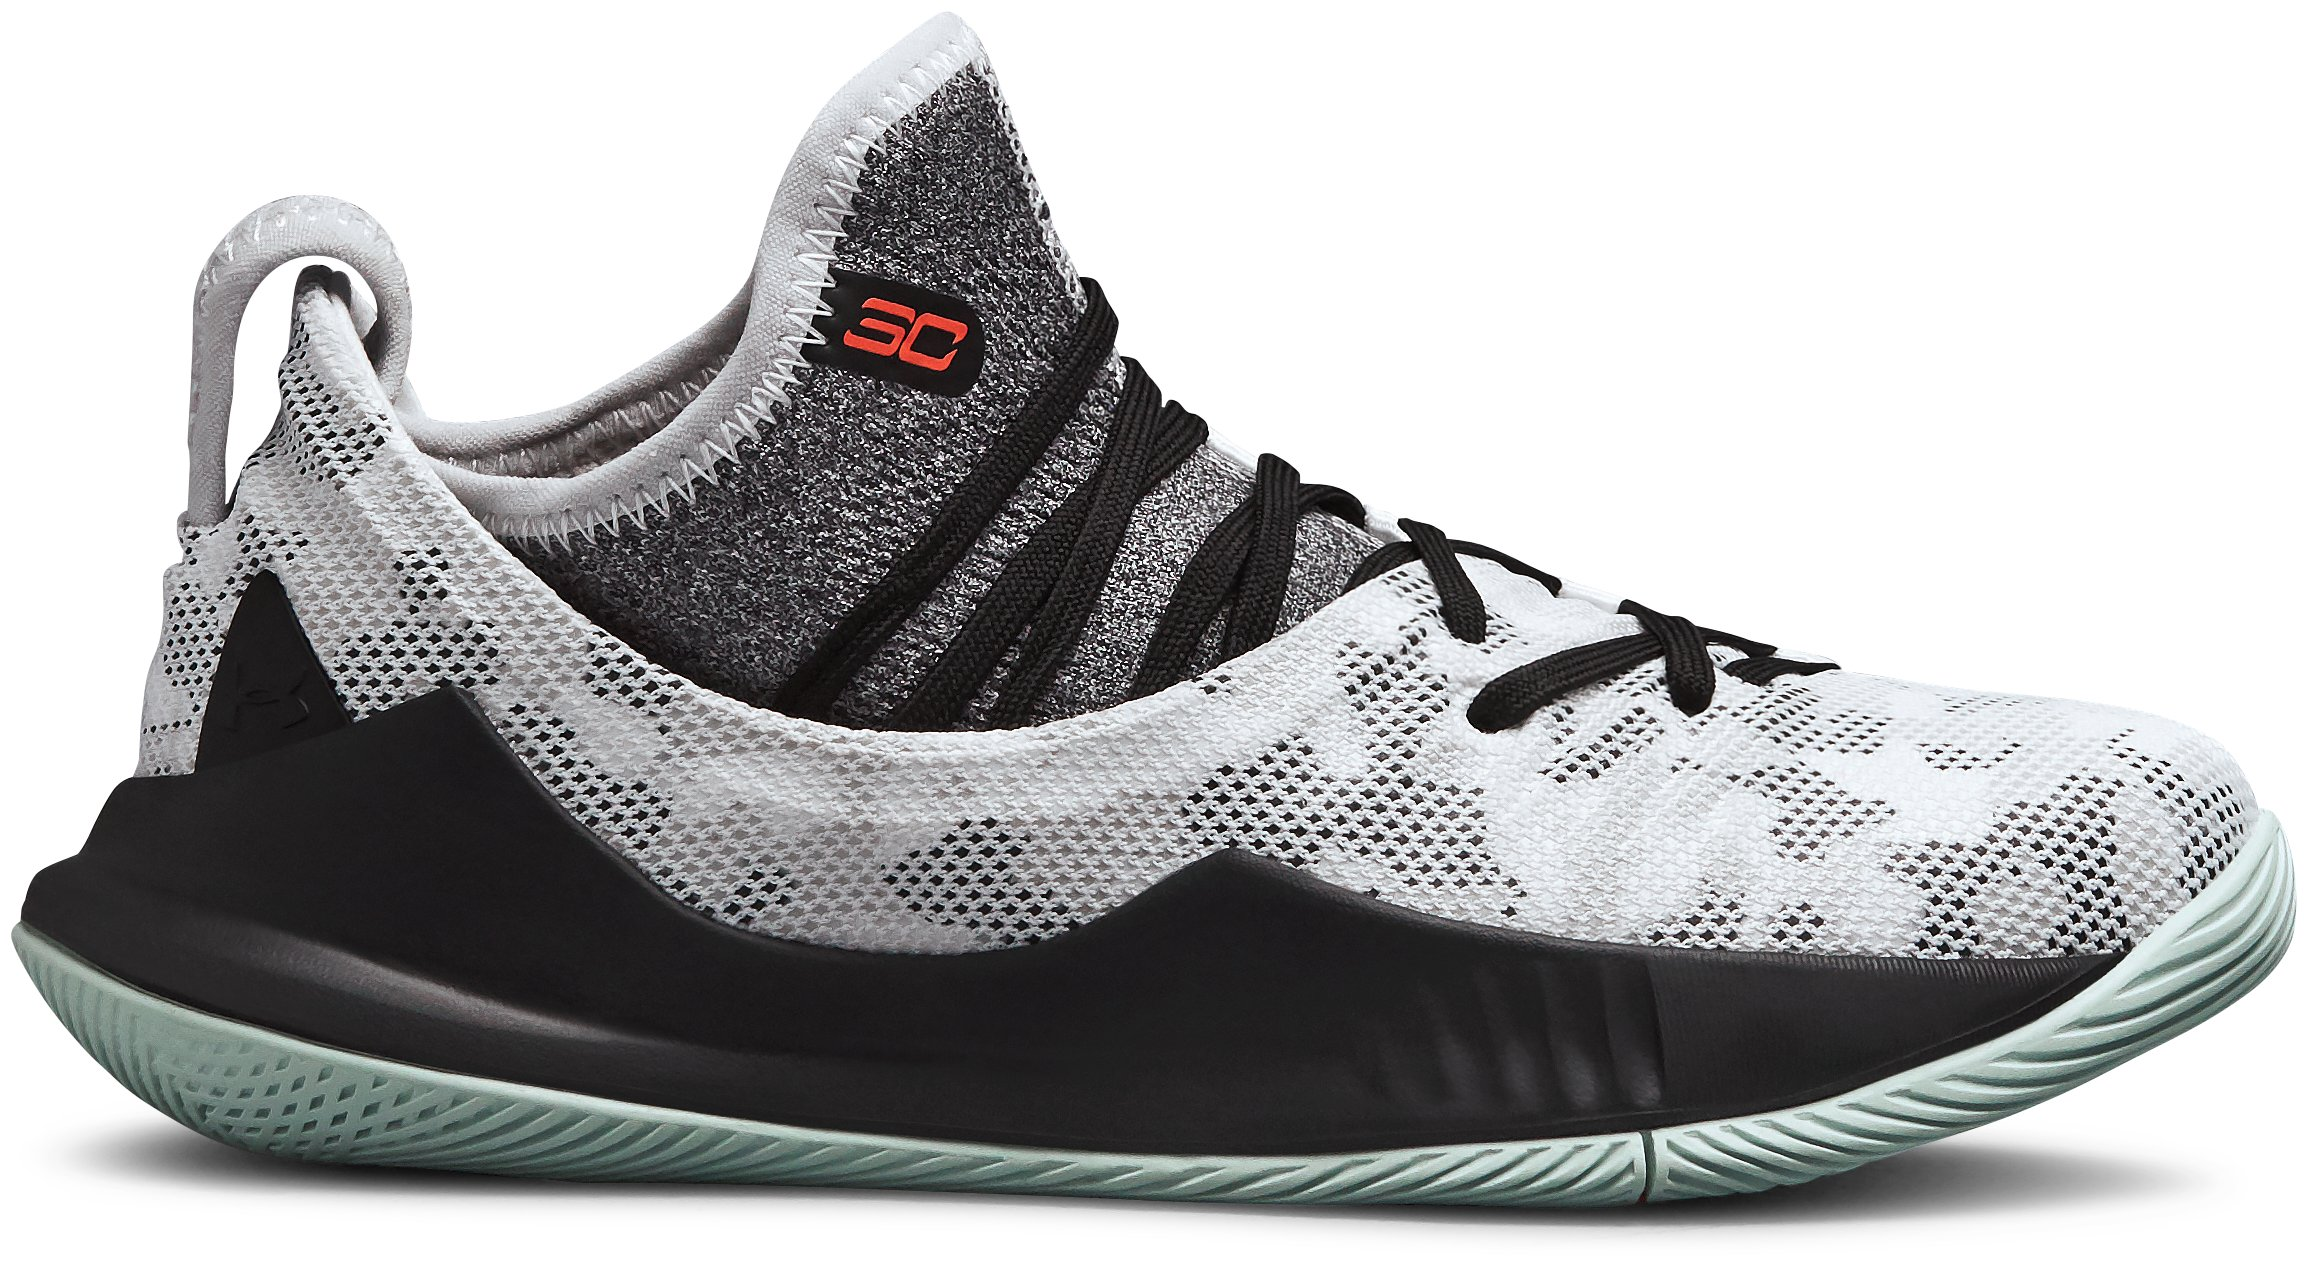 Boys' Pre-School UA Curry 5 Basketball Shoes, 360 degree view